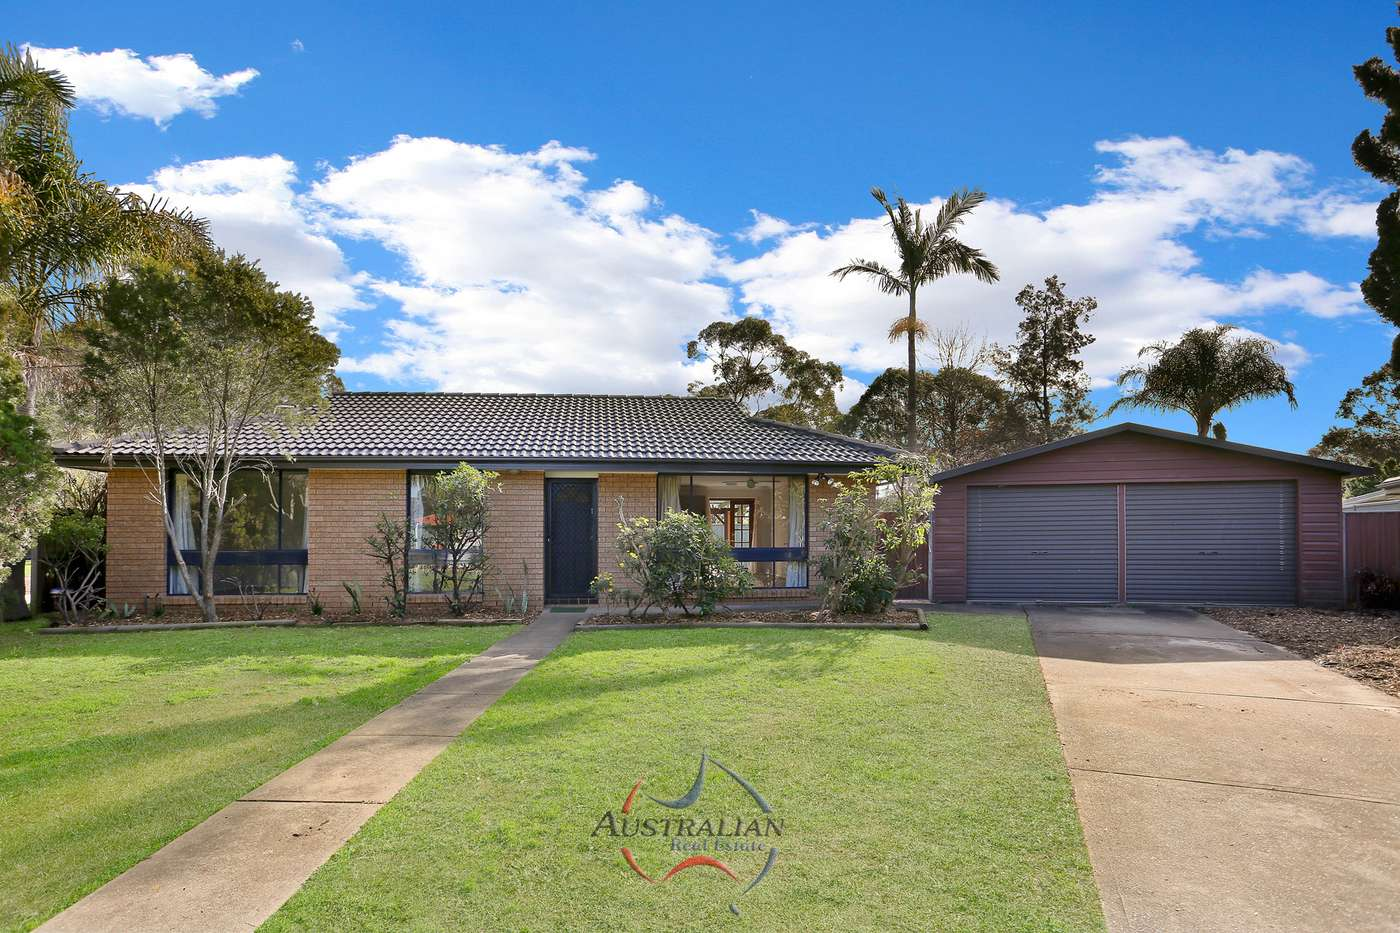 Main view of Homely house listing, 6 Oldfield Court, St Clair, NSW 2759